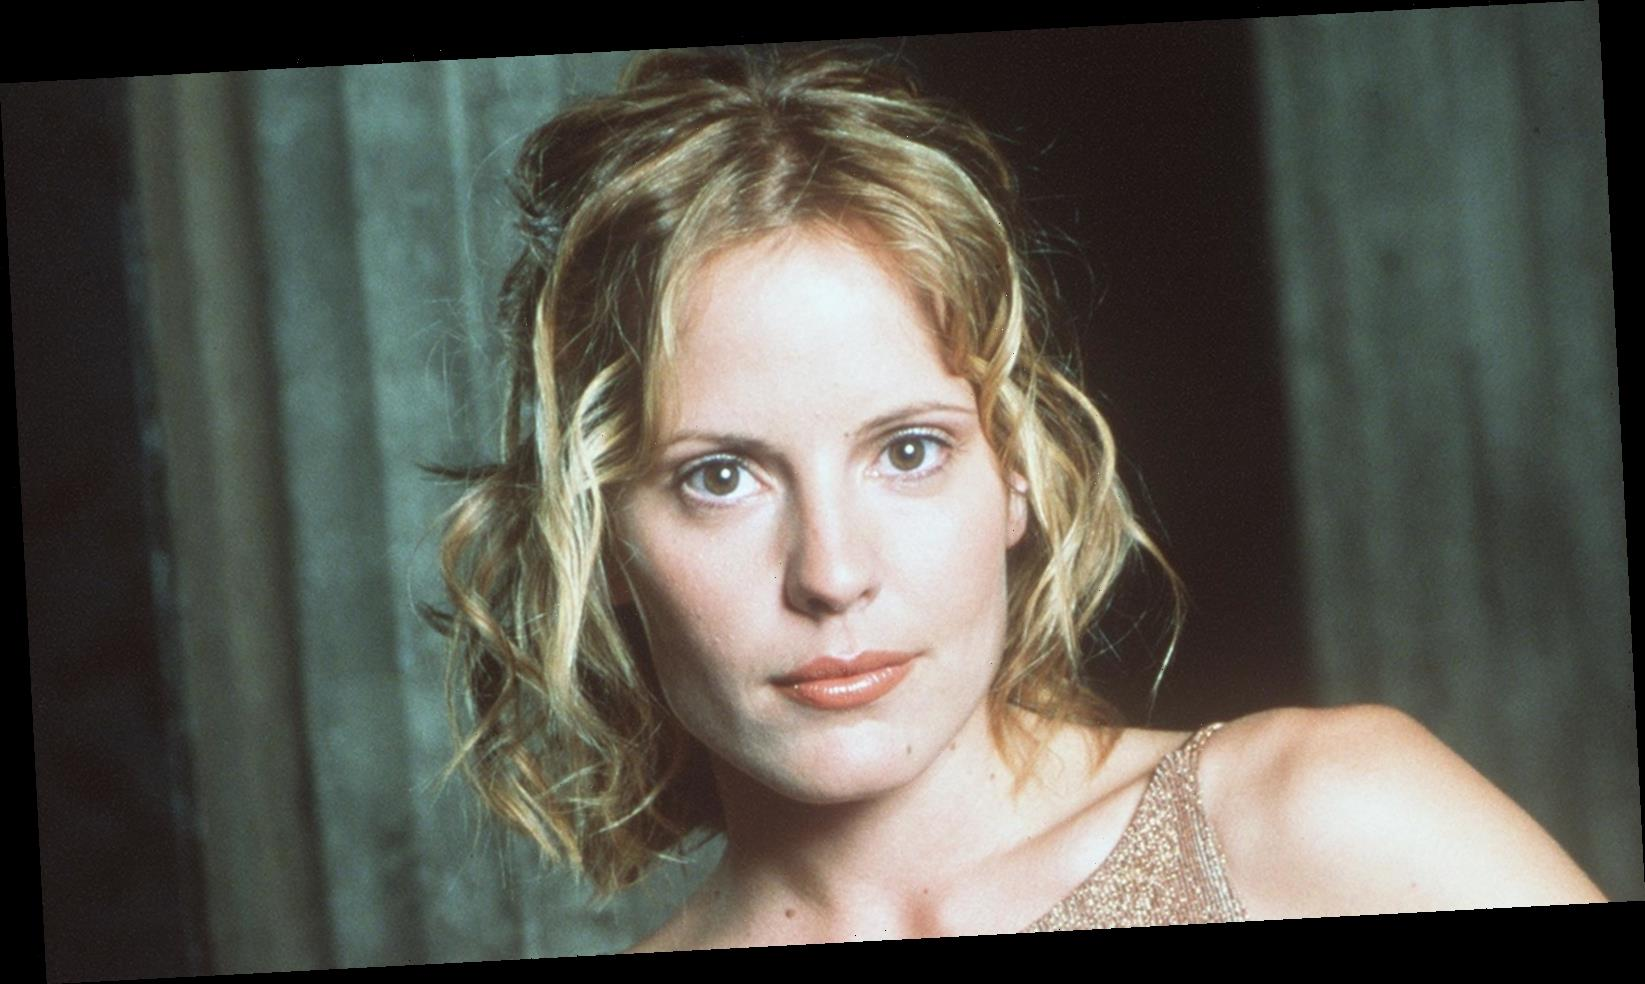 What Emma Caulfield from Buffy the Vampire Slayer looks like today